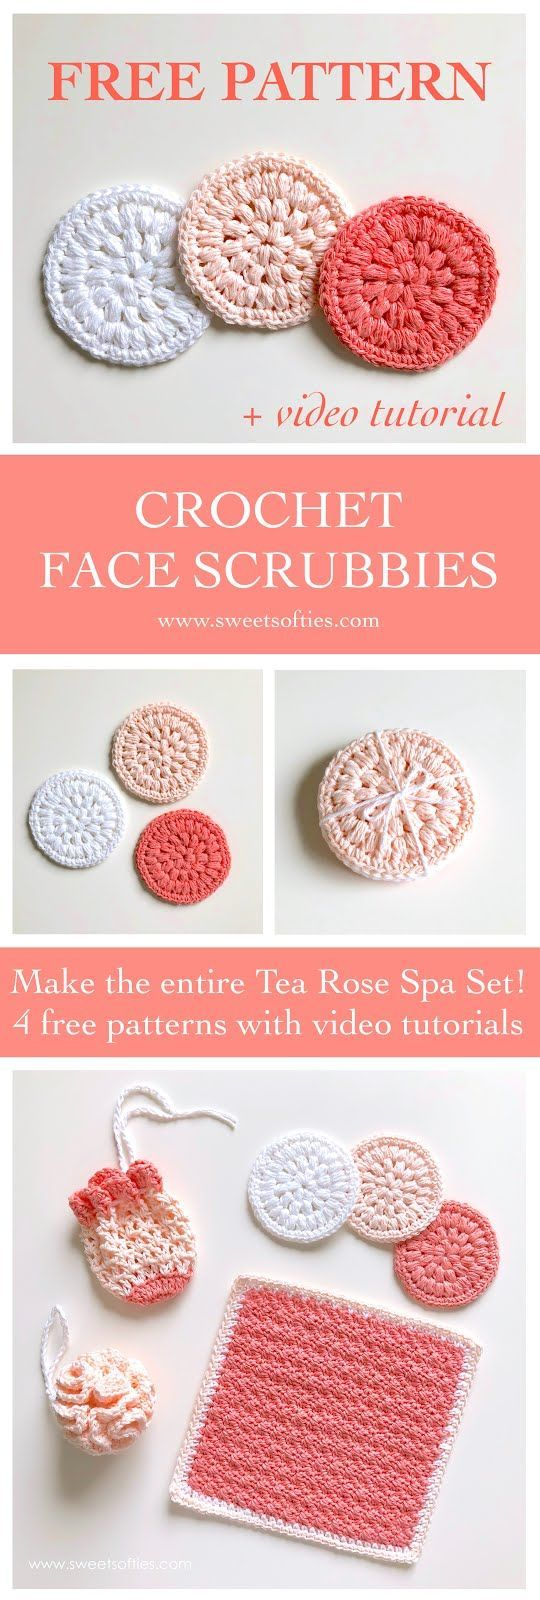 Photo of Free crochet pattern: Face Scrubby from the Tea Rose Spa Set! This collection of…